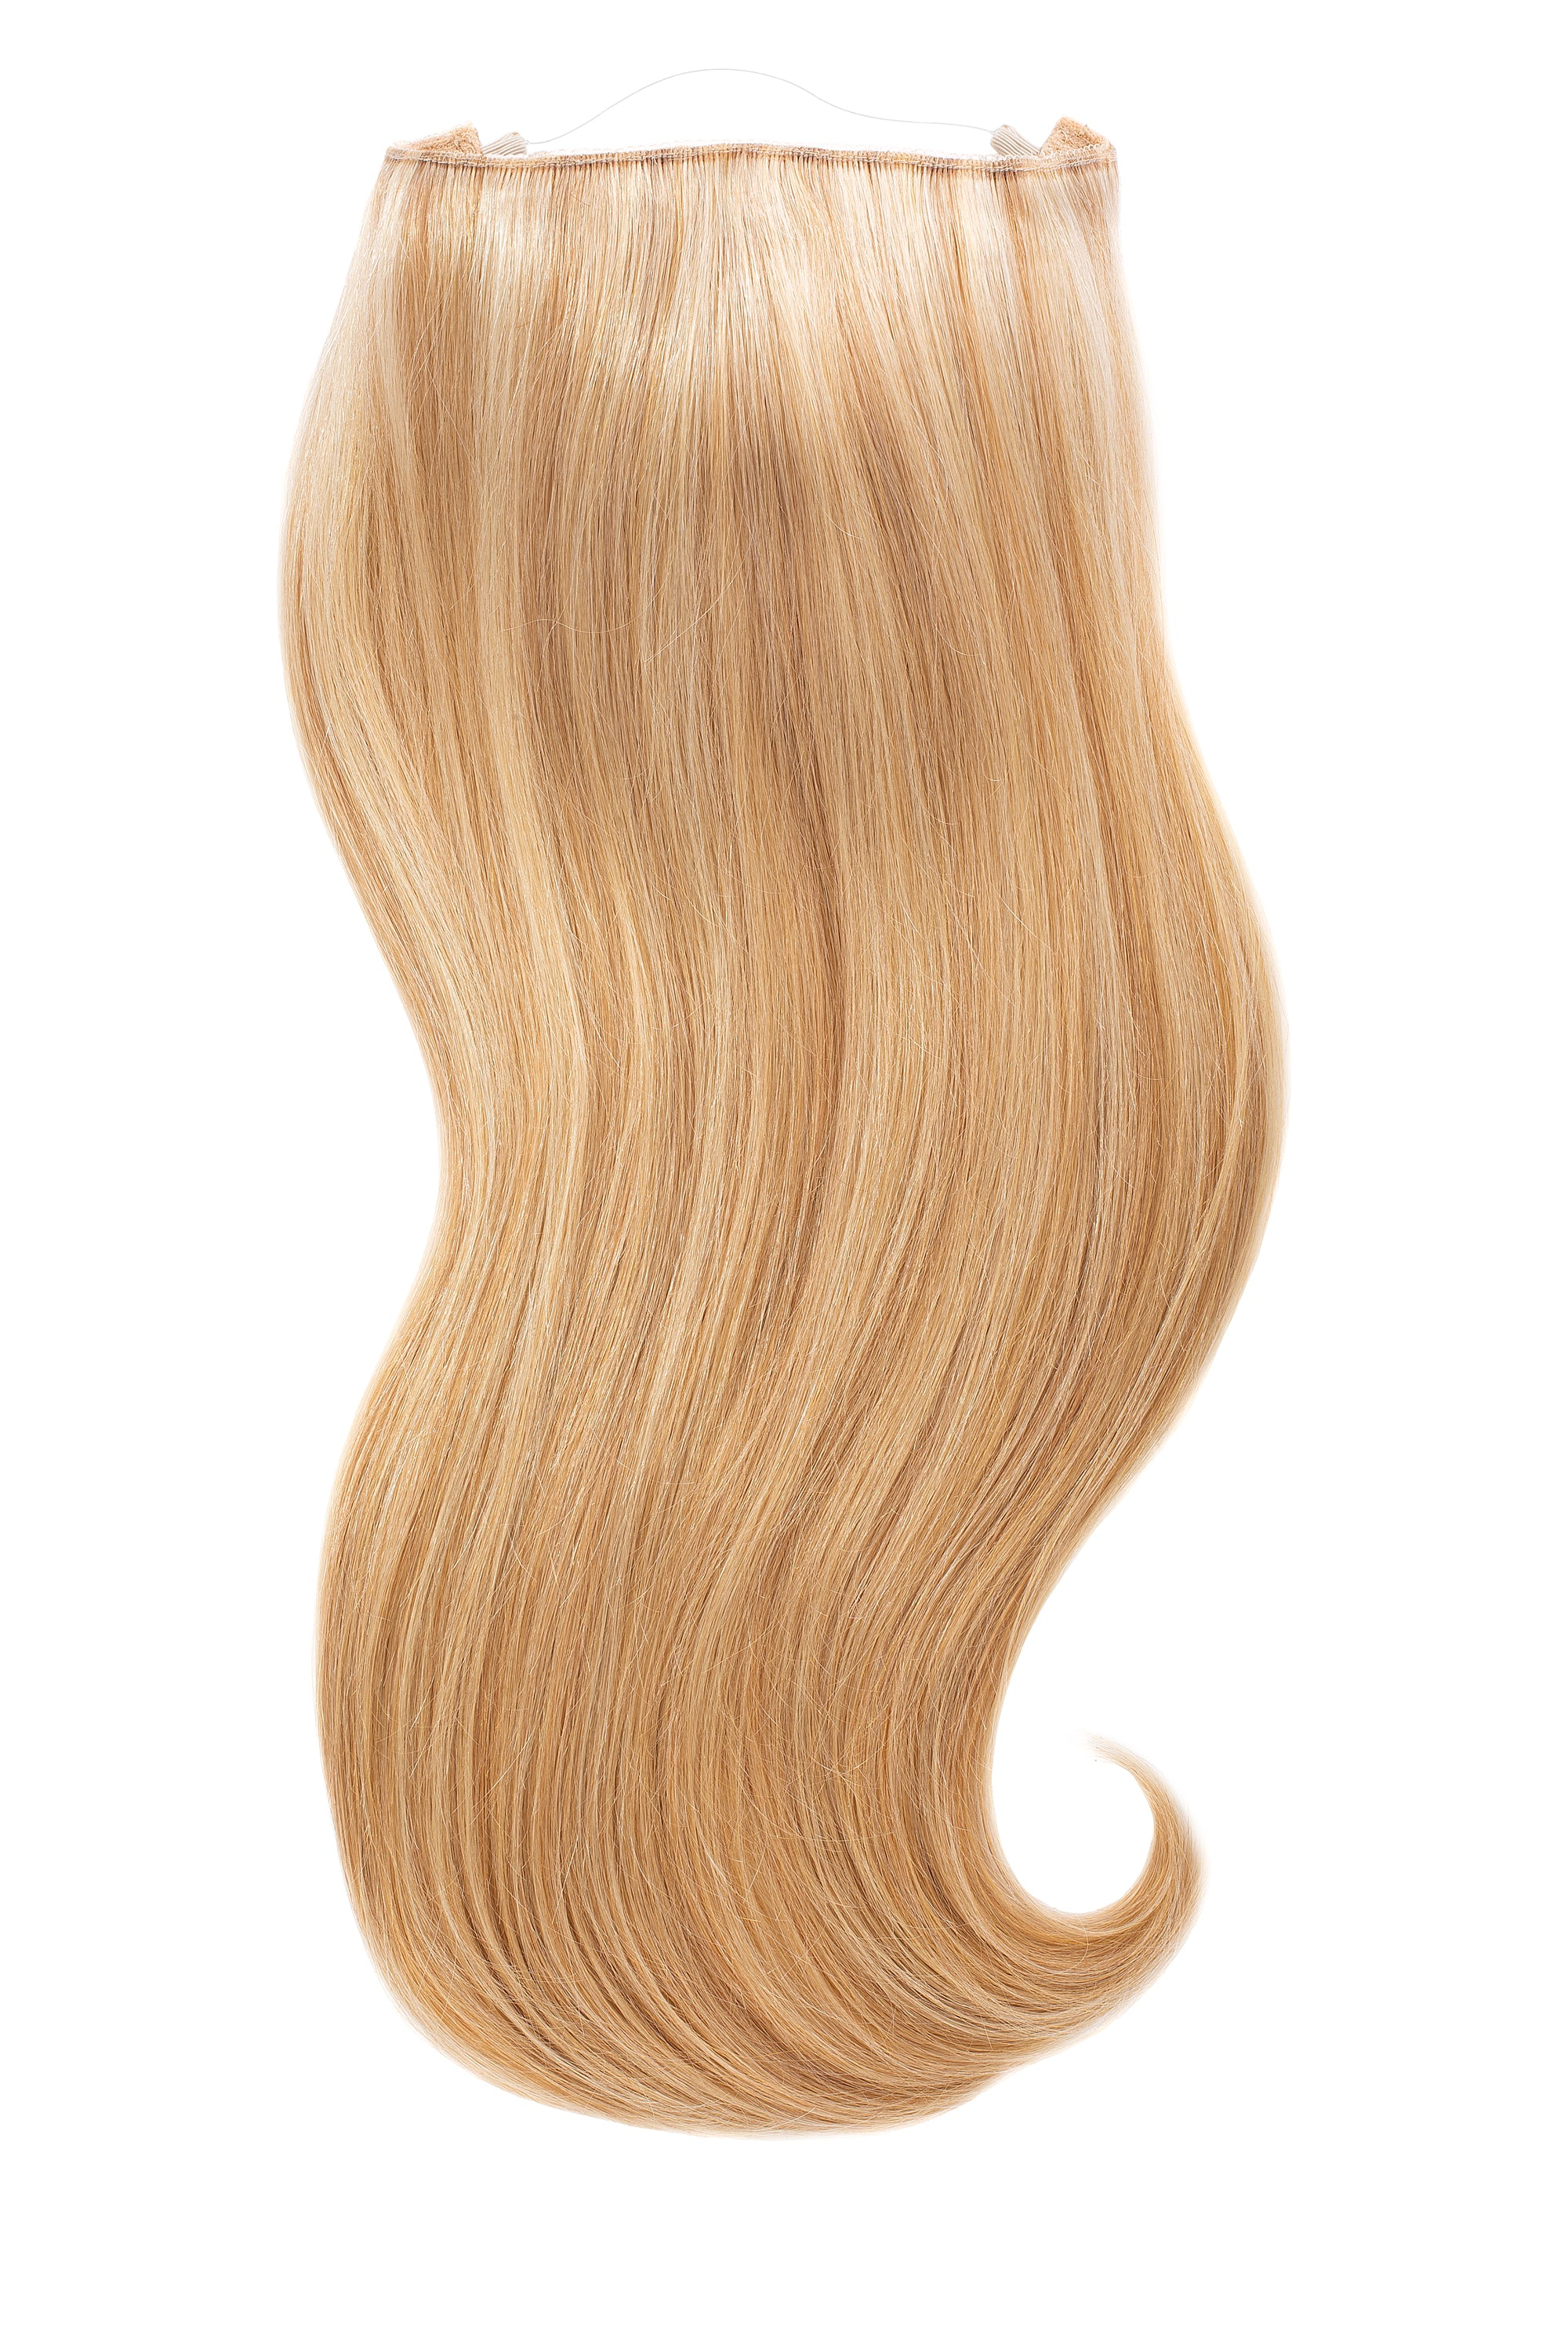 Blonde Highlights Halo Hair Extension